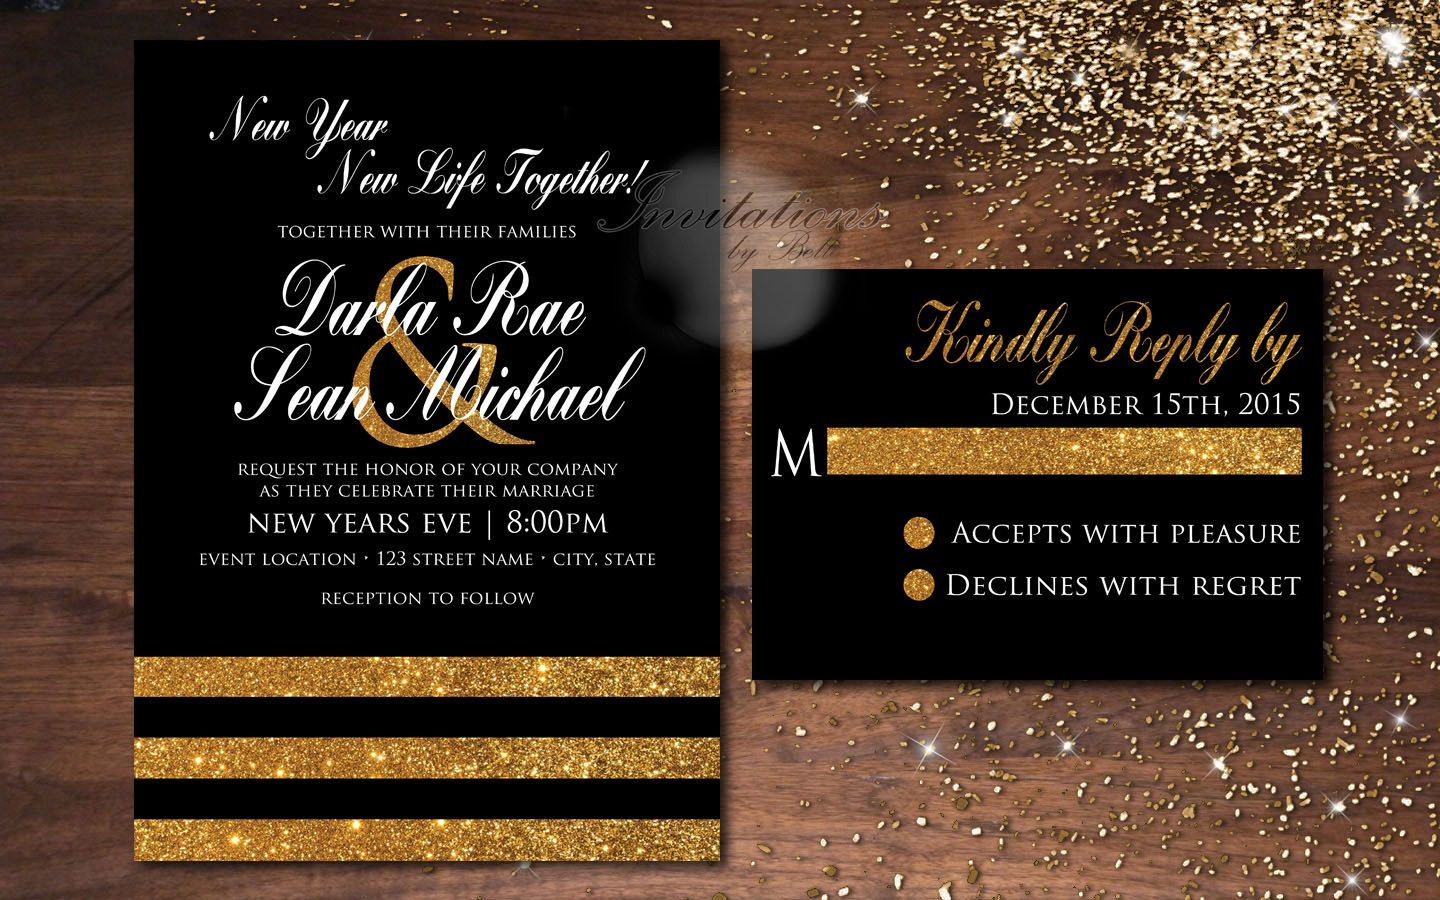 New Years Eve Wedding Invitation: New Years Black And Gold Glitter Black White New Years Eve